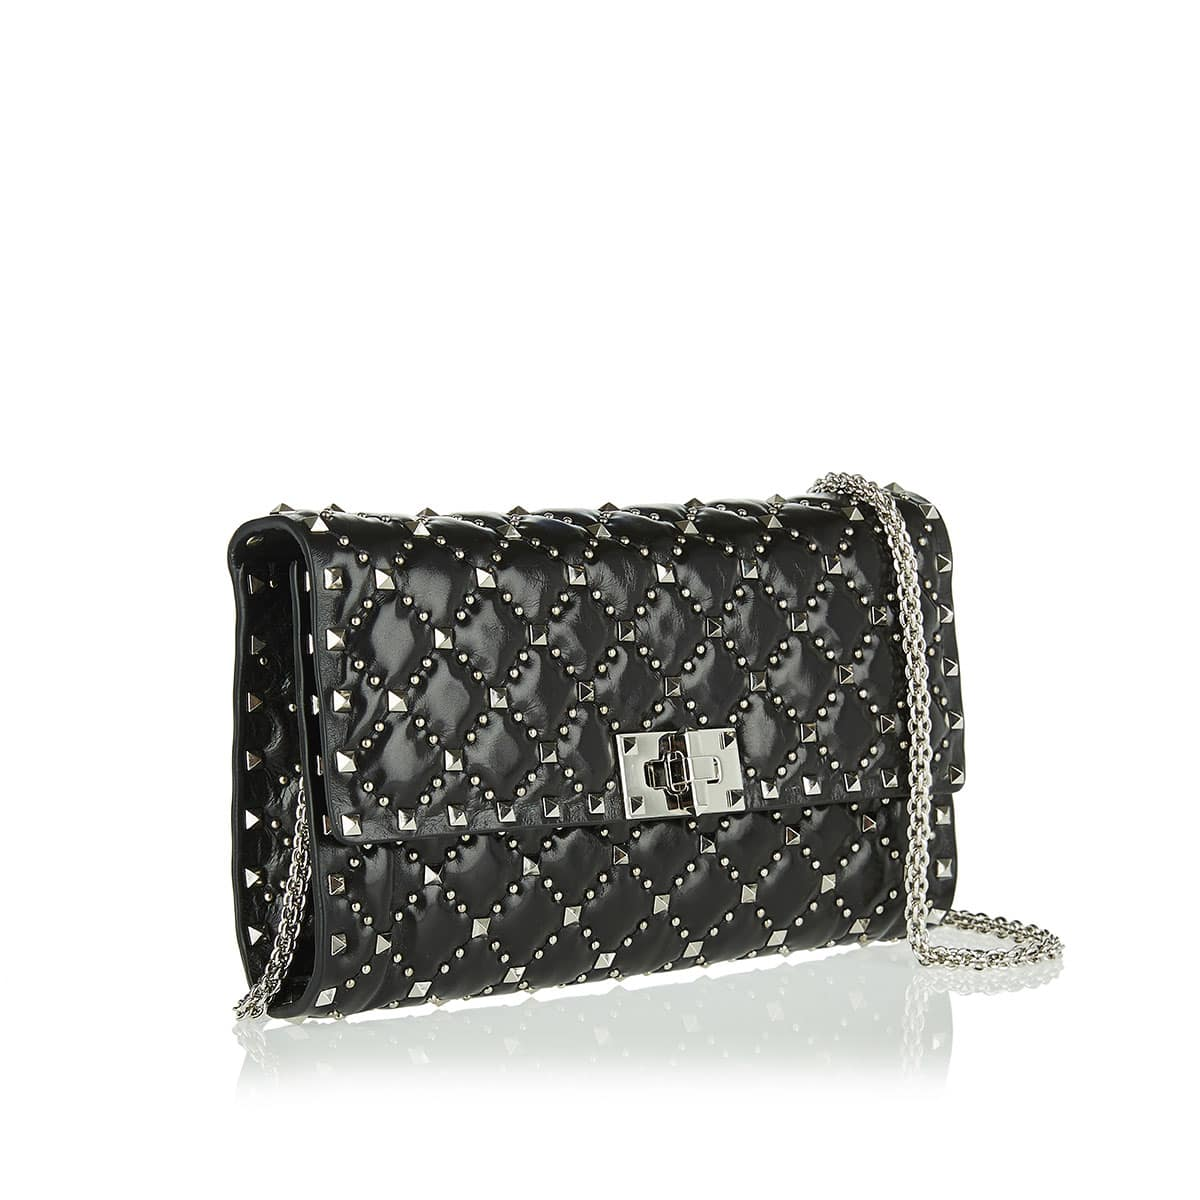 Rockstud Spike.It studded chain bag